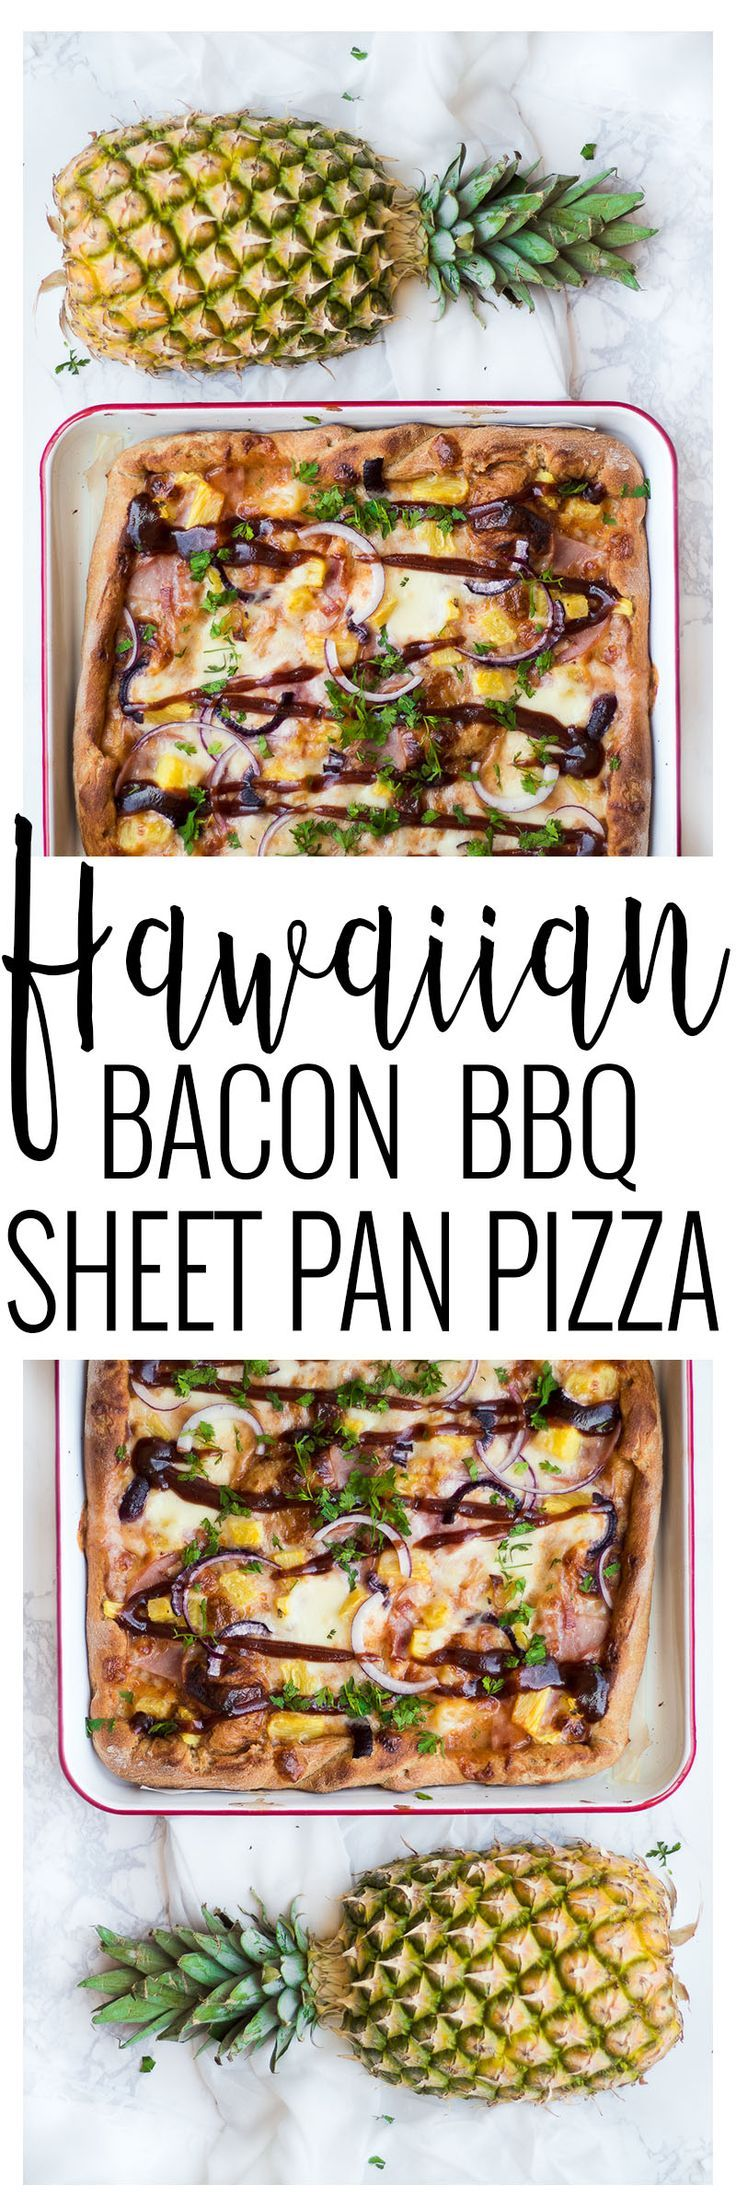 Hawaiian Bacon BBQ Pizza | easy pizza recipes | hawaiian pizza recipes | one pan meal ideas | easy clean up meals | quick dinner recipes